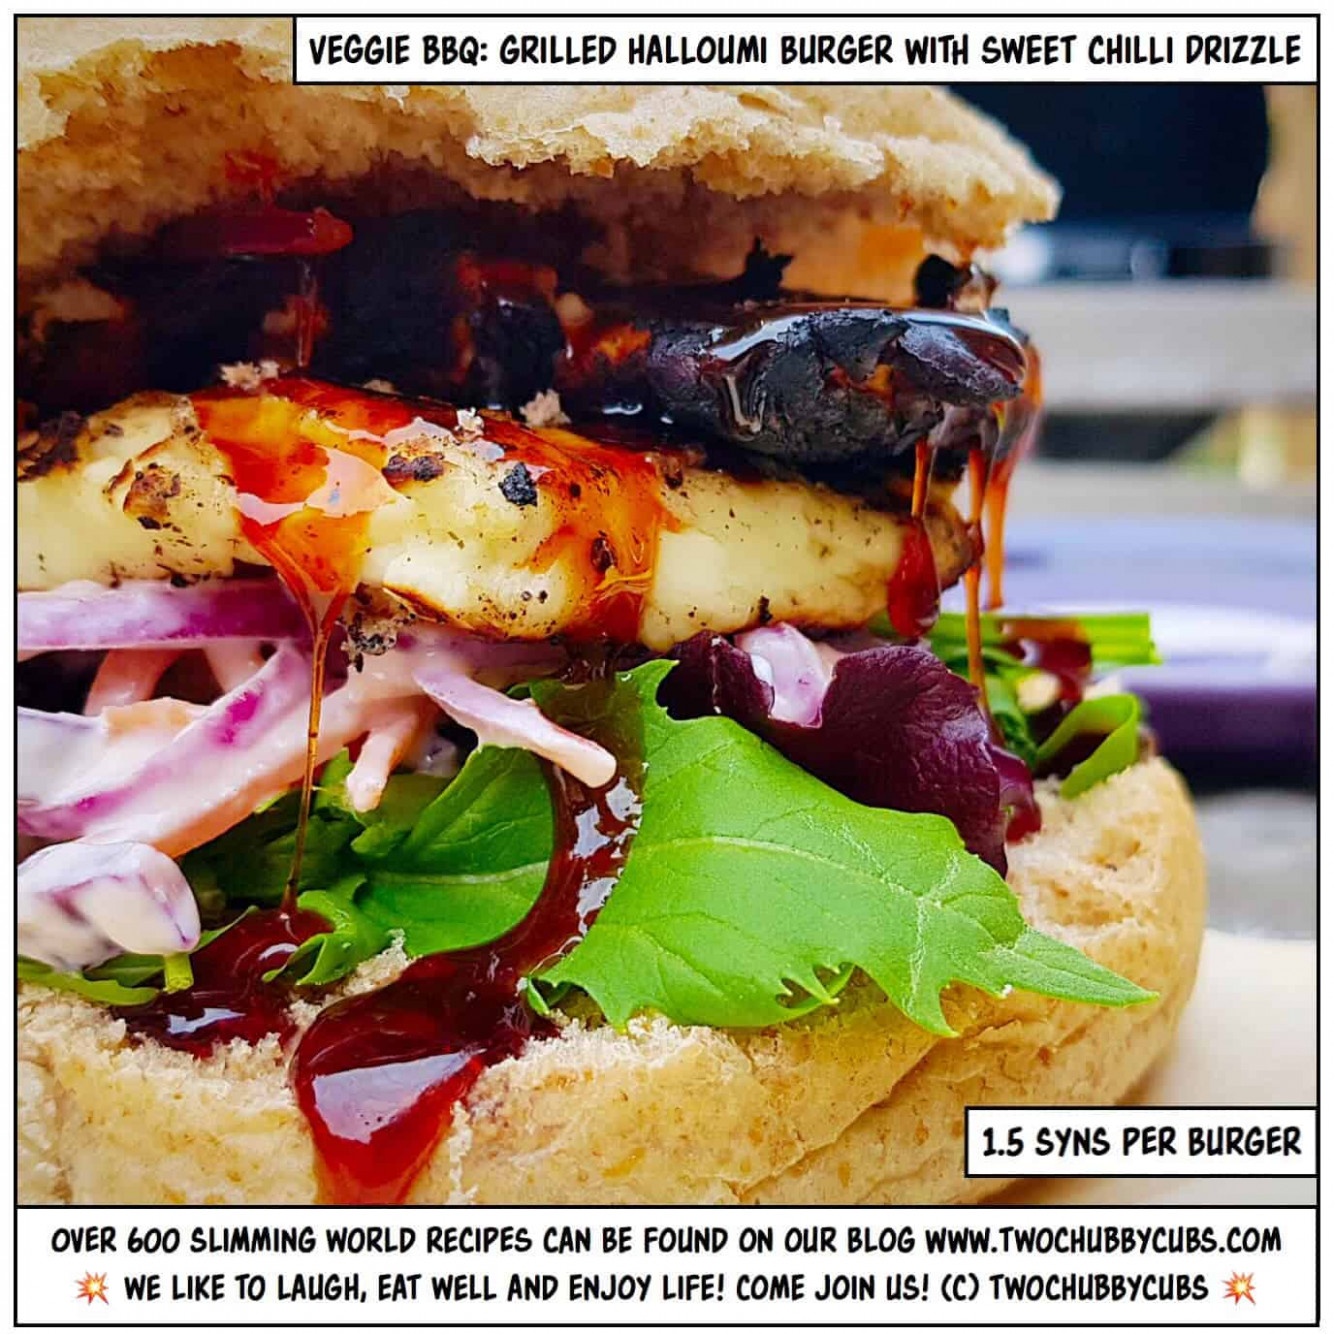 Slimming World halloumi burgers with sweet chilli drizzle - slimming world recipes vegetarian